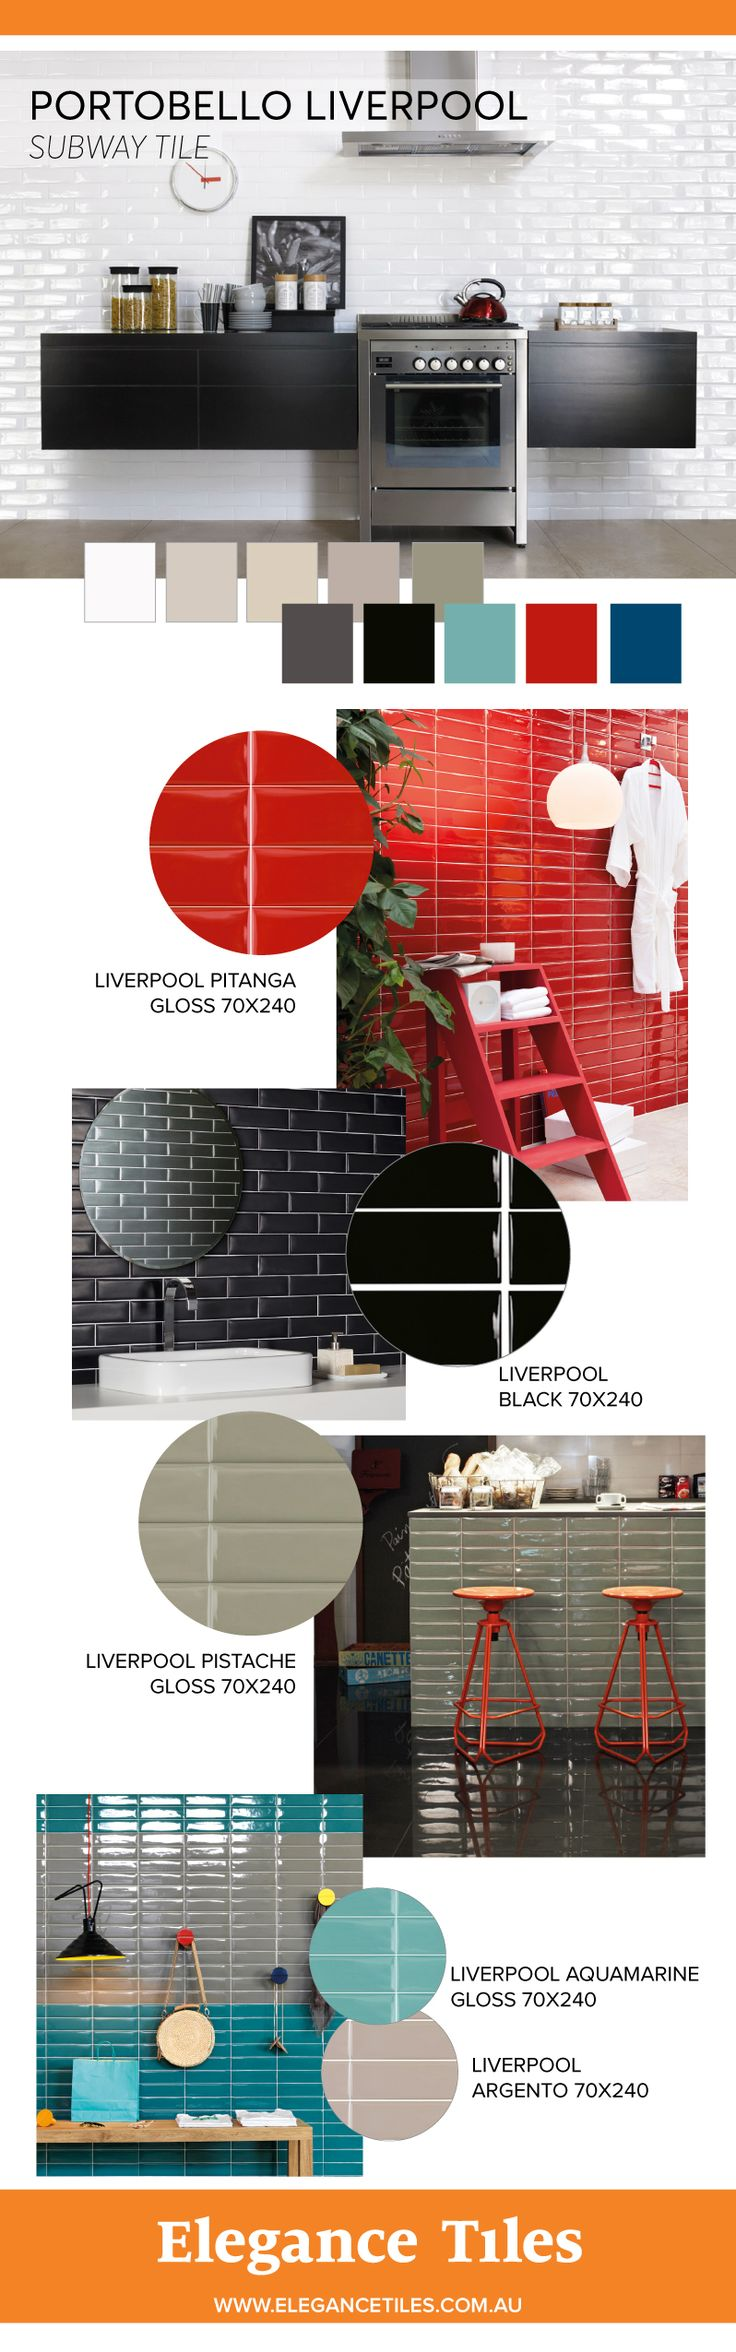 How to use colourful subway tiles in your home!  Featuring Portobello Liverpool tiles available at elegance tiles